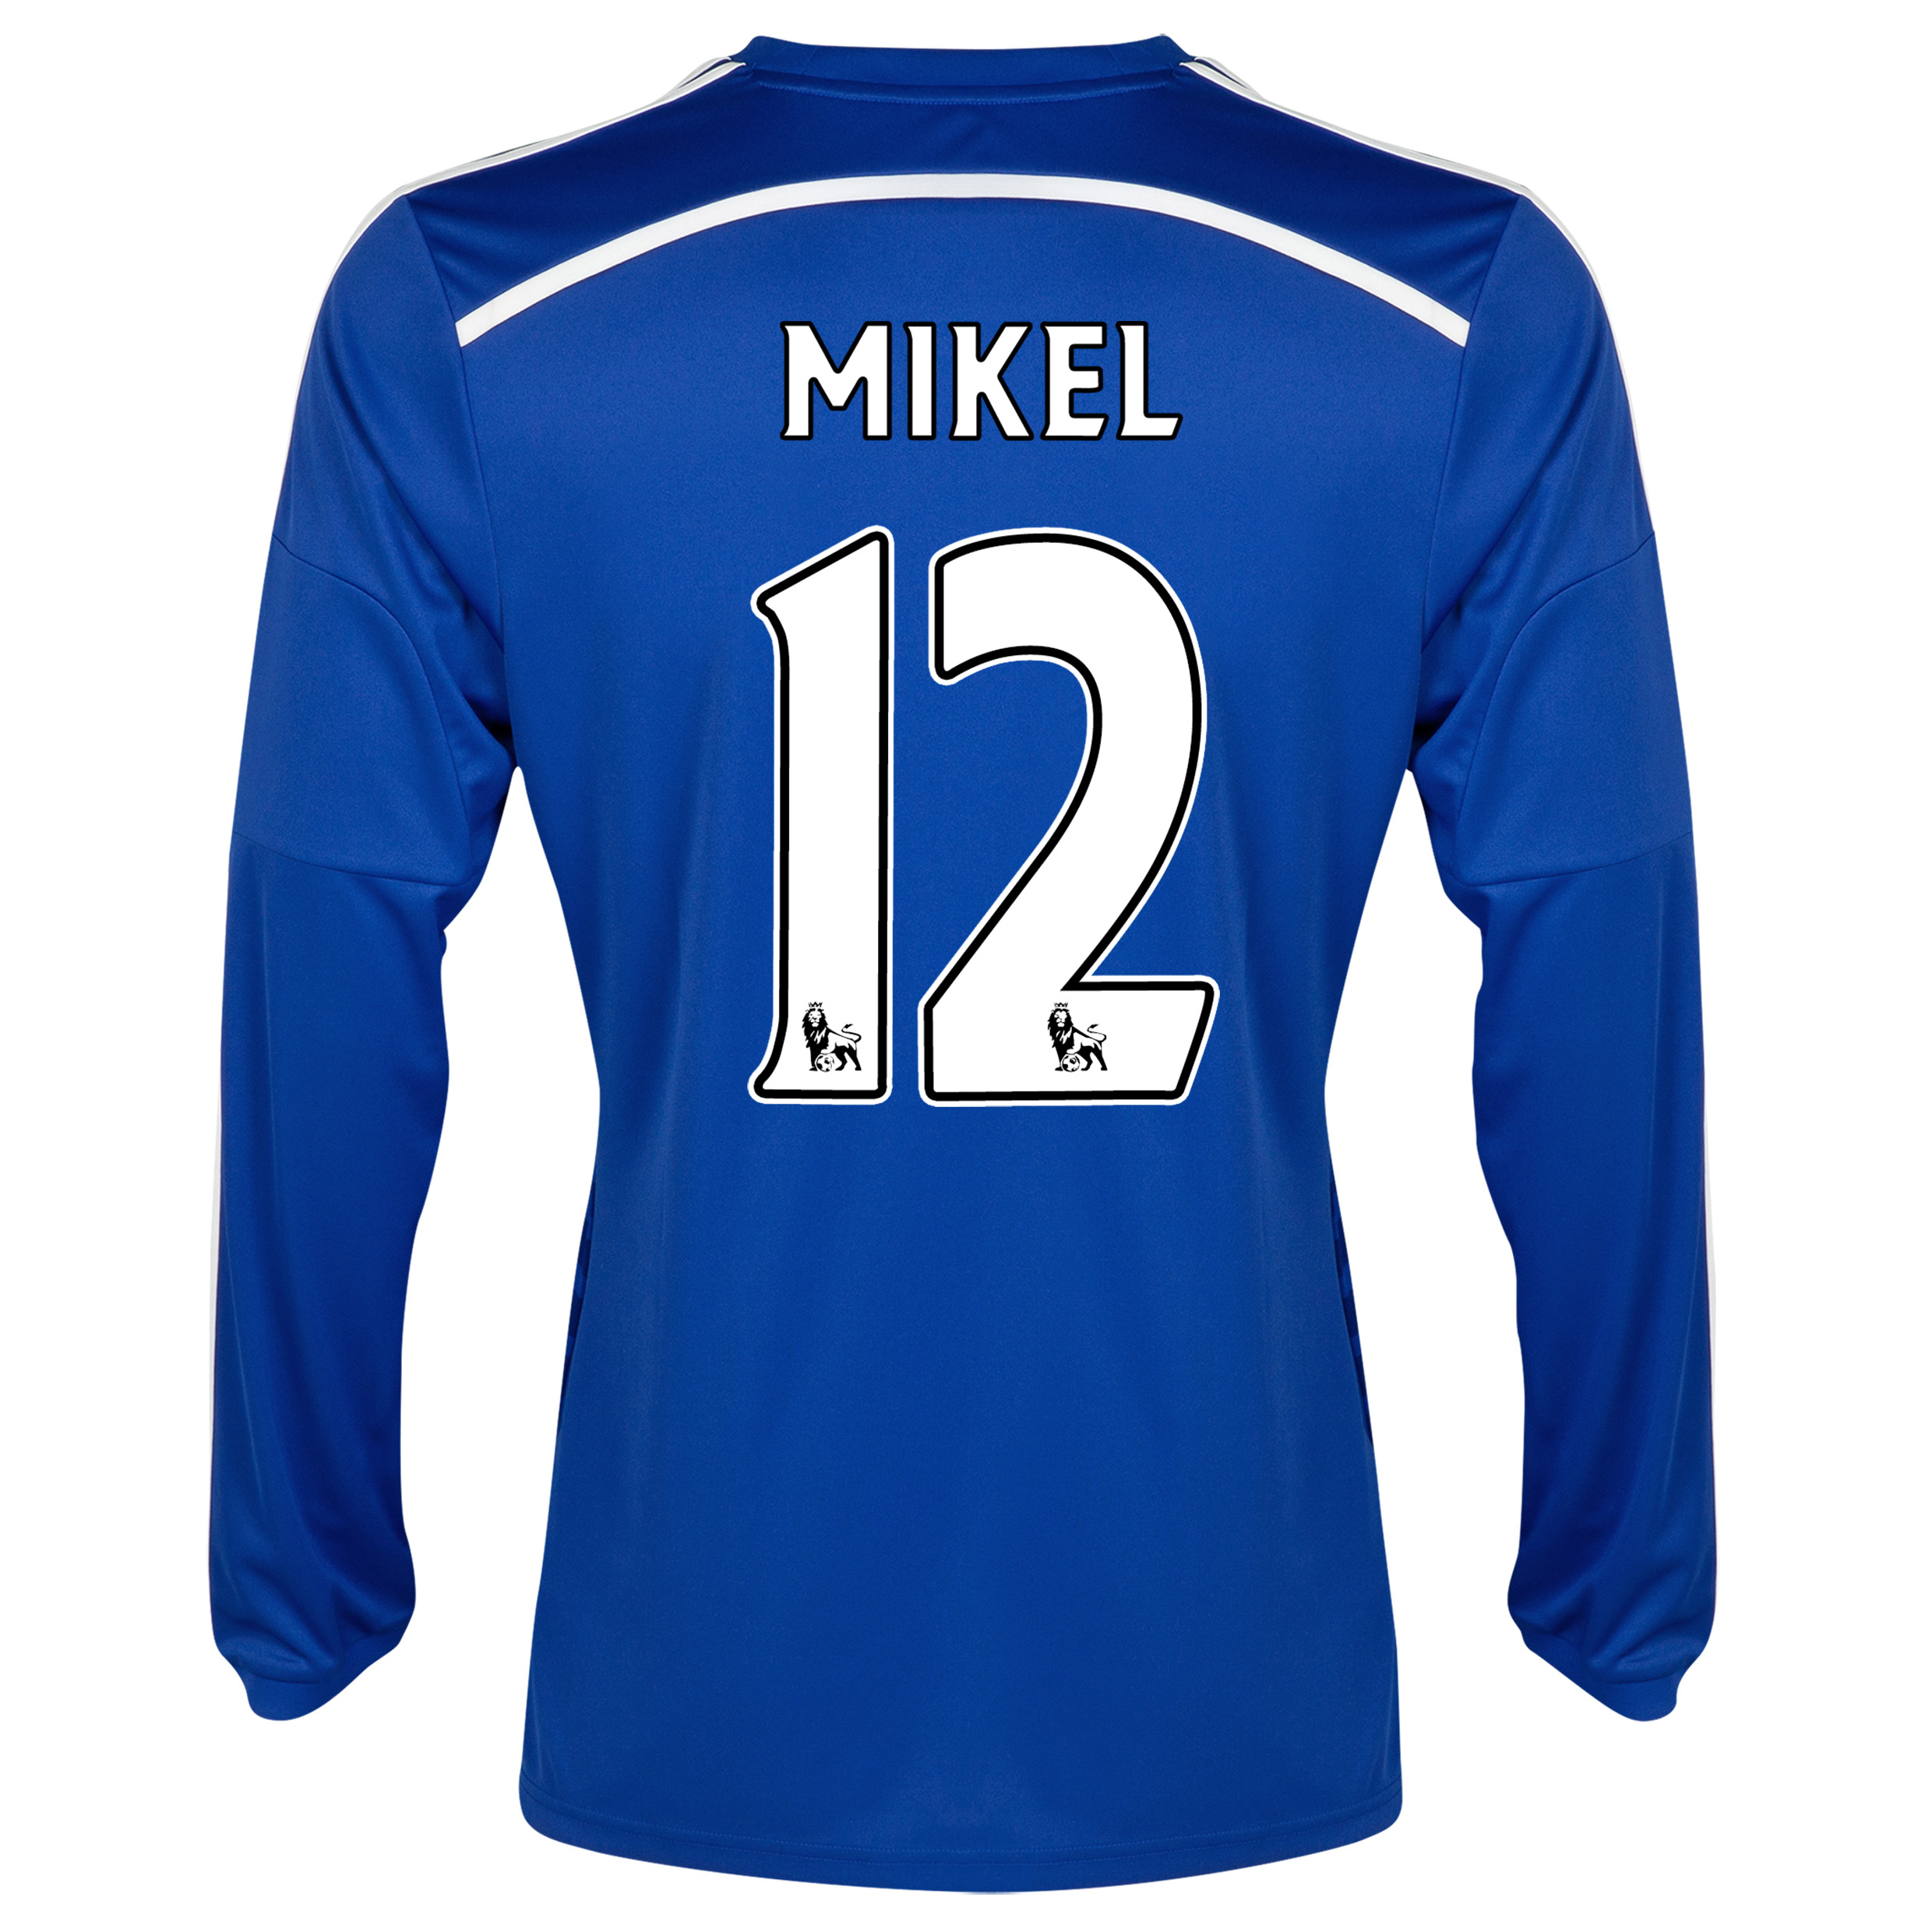 Chelsea Home Shirt 2014/15 - Long Sleeve Blue with Mikel 12 printing